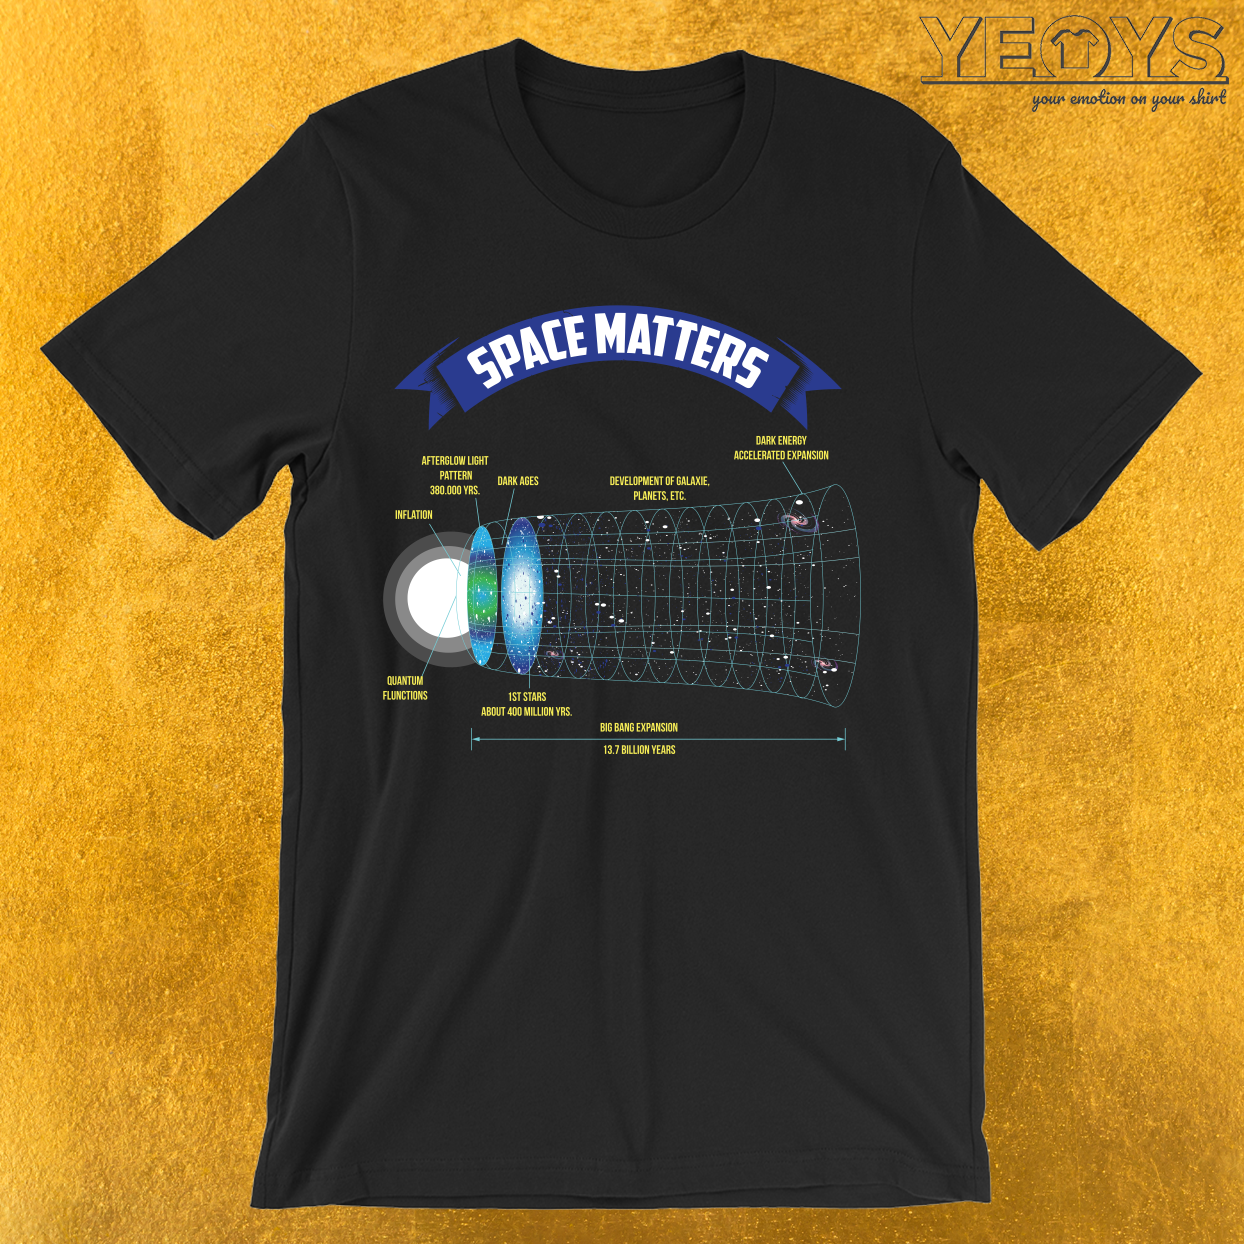 Space Matters T-Shirt